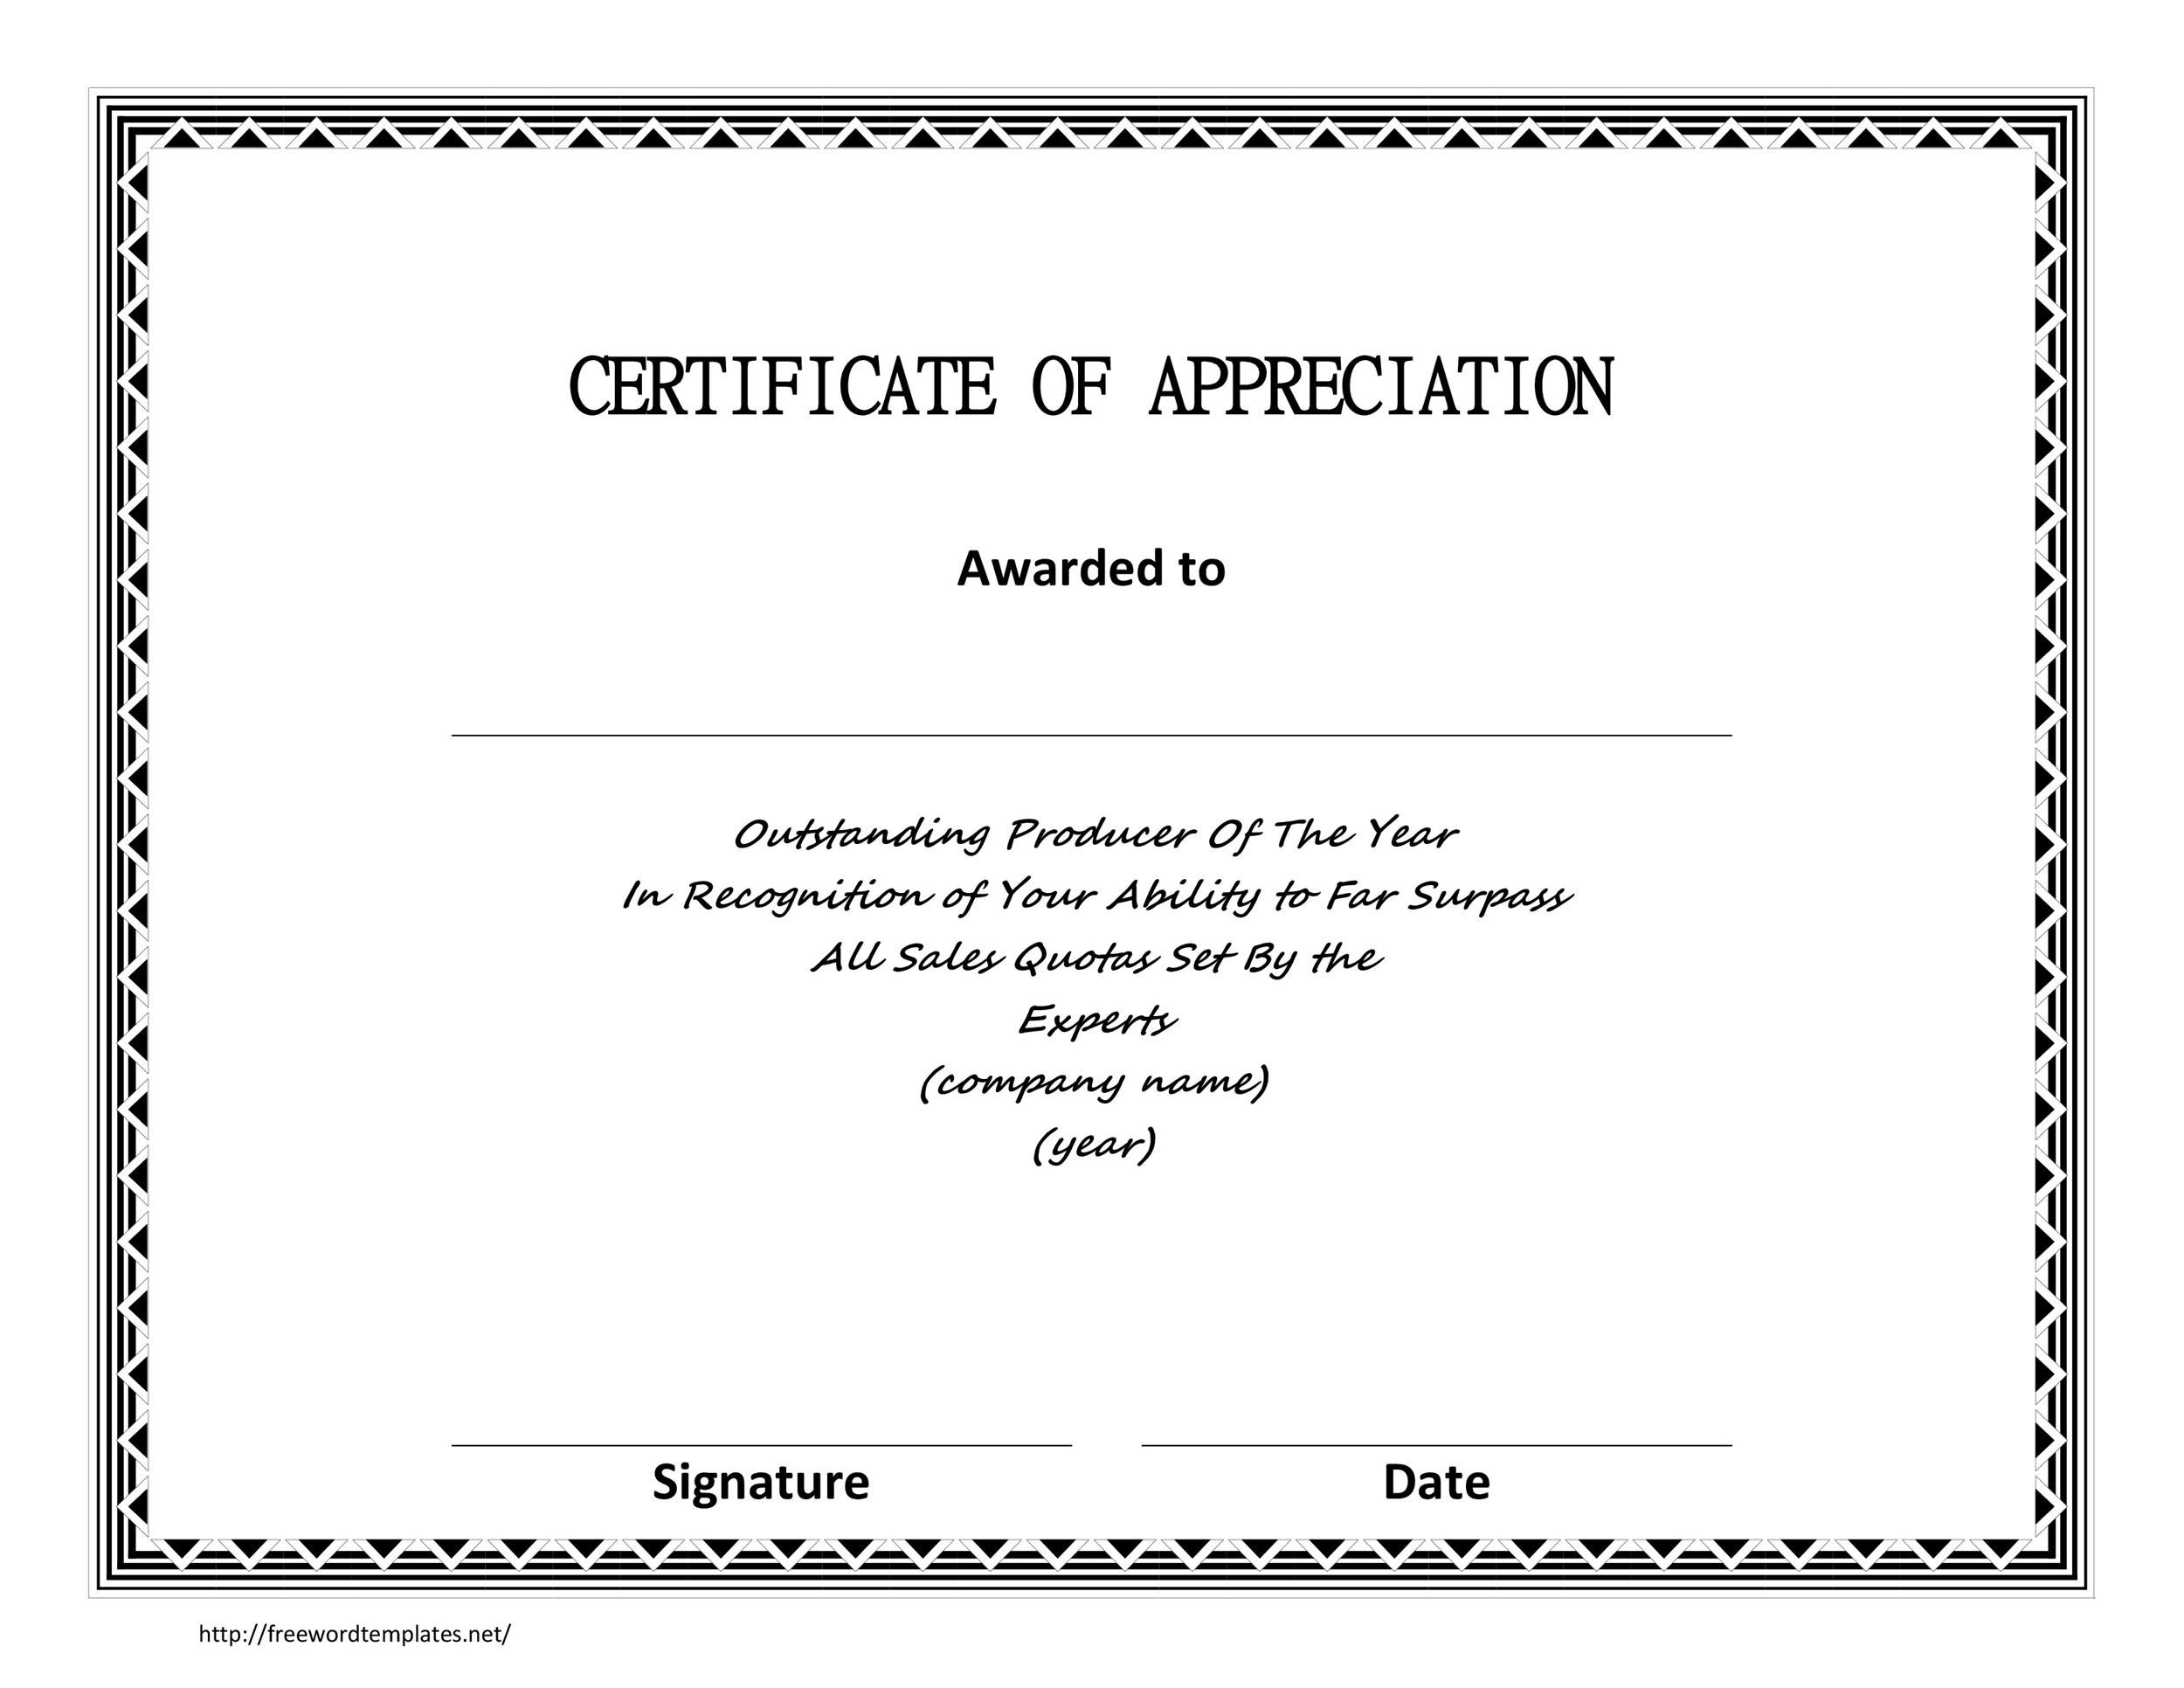 printable certificate of appreciation 06